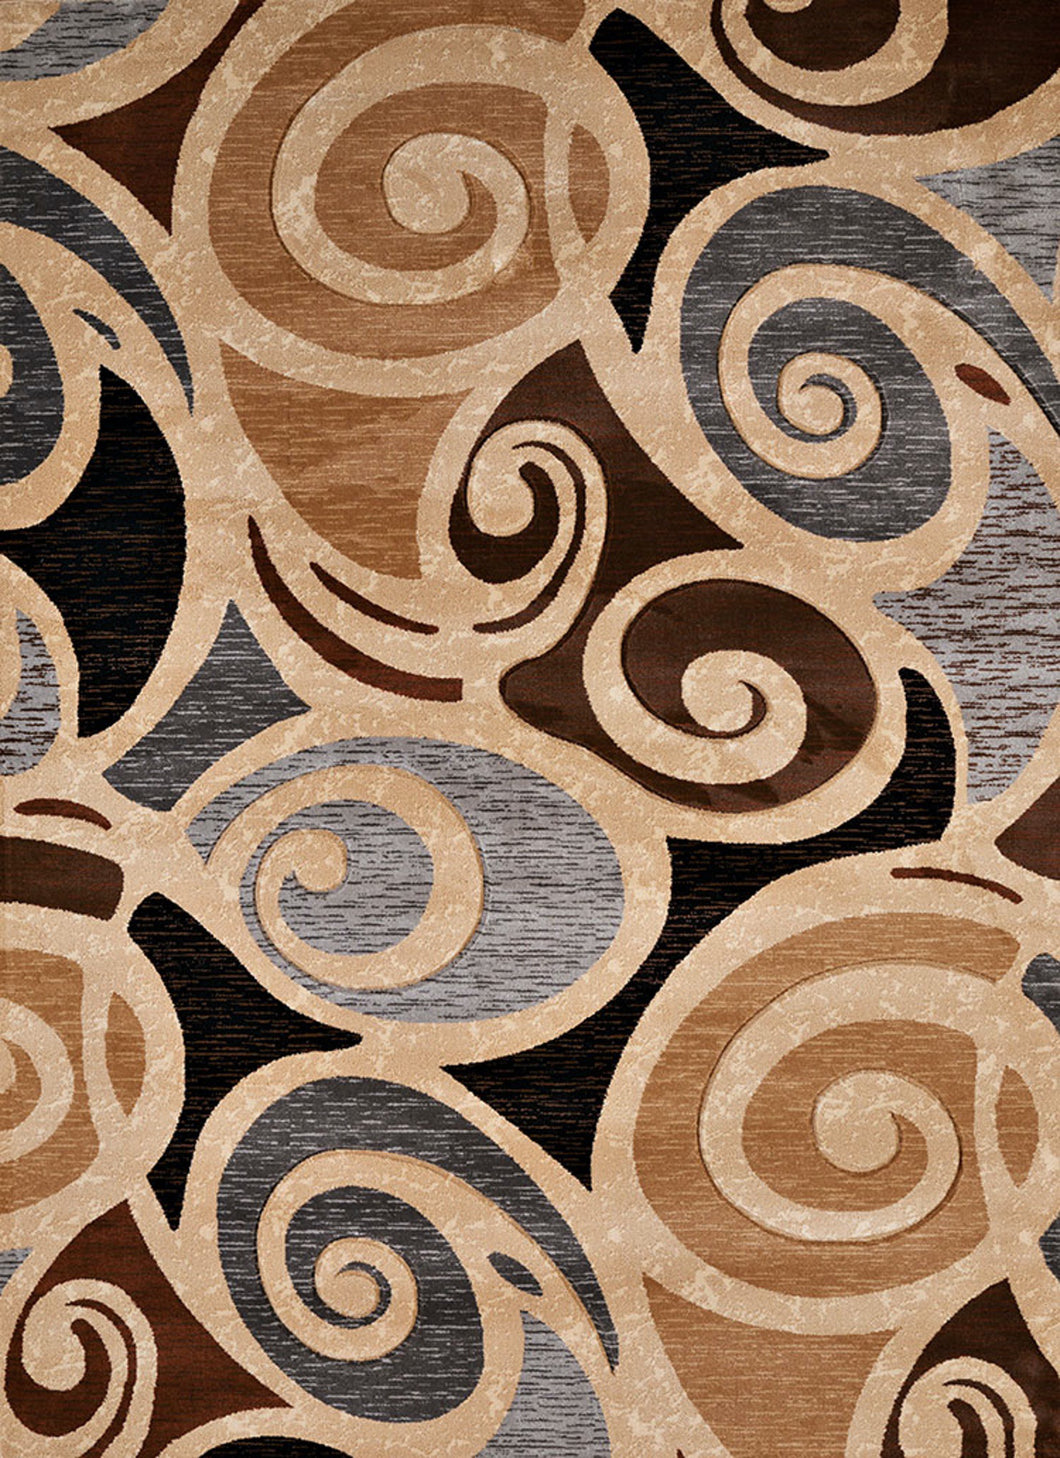 United Weavers  Contours  Frilly  702 33817  Natural  Area Rug